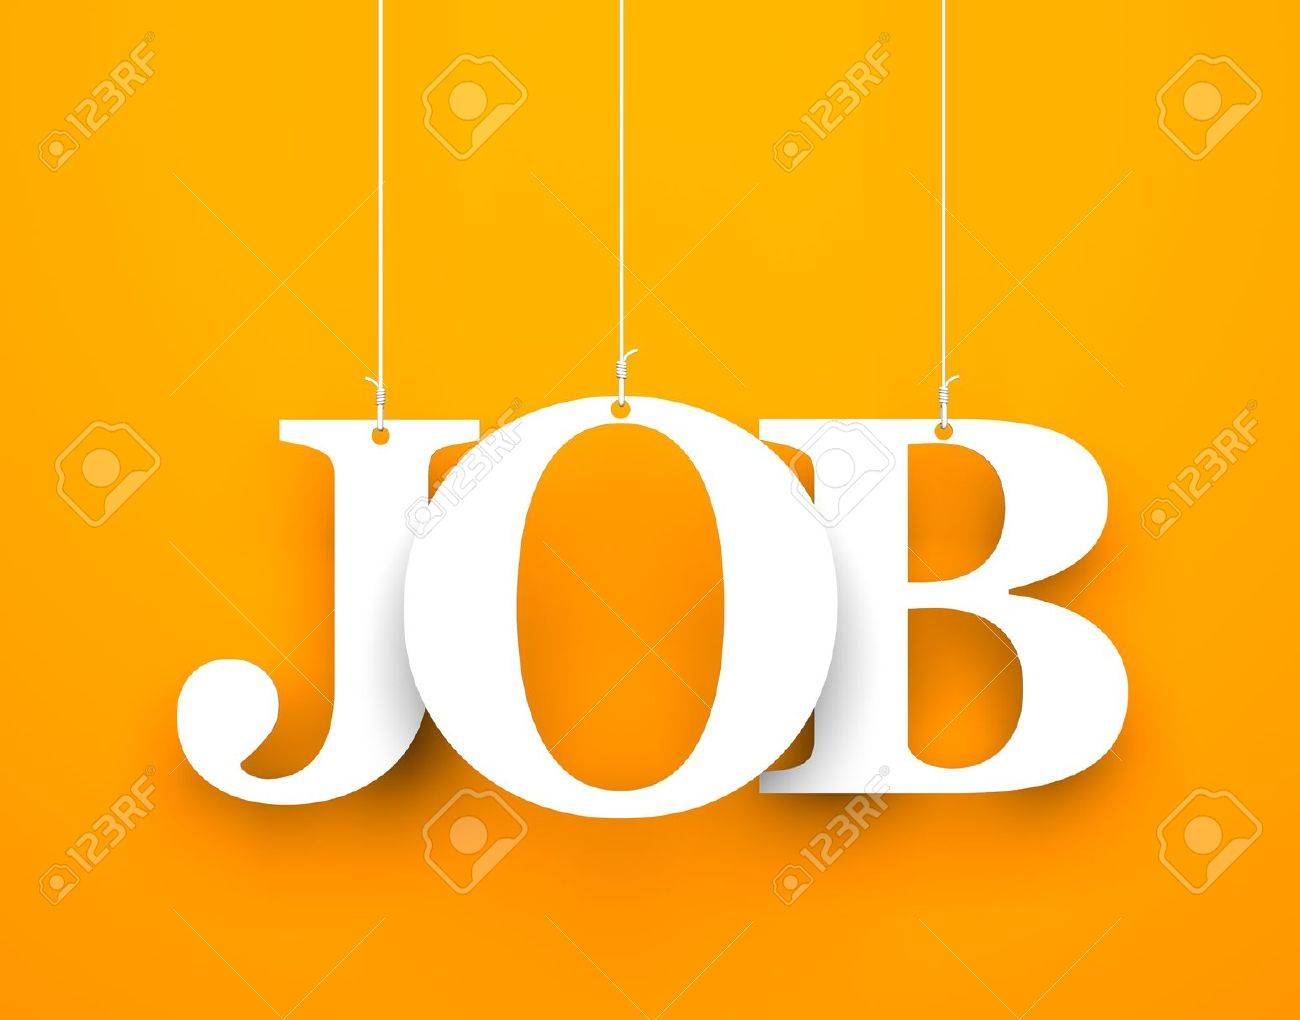 jobs ad stock photos images royalty jobs ad images and pictures jobs ad orange background hanging letters which make up the word job stock